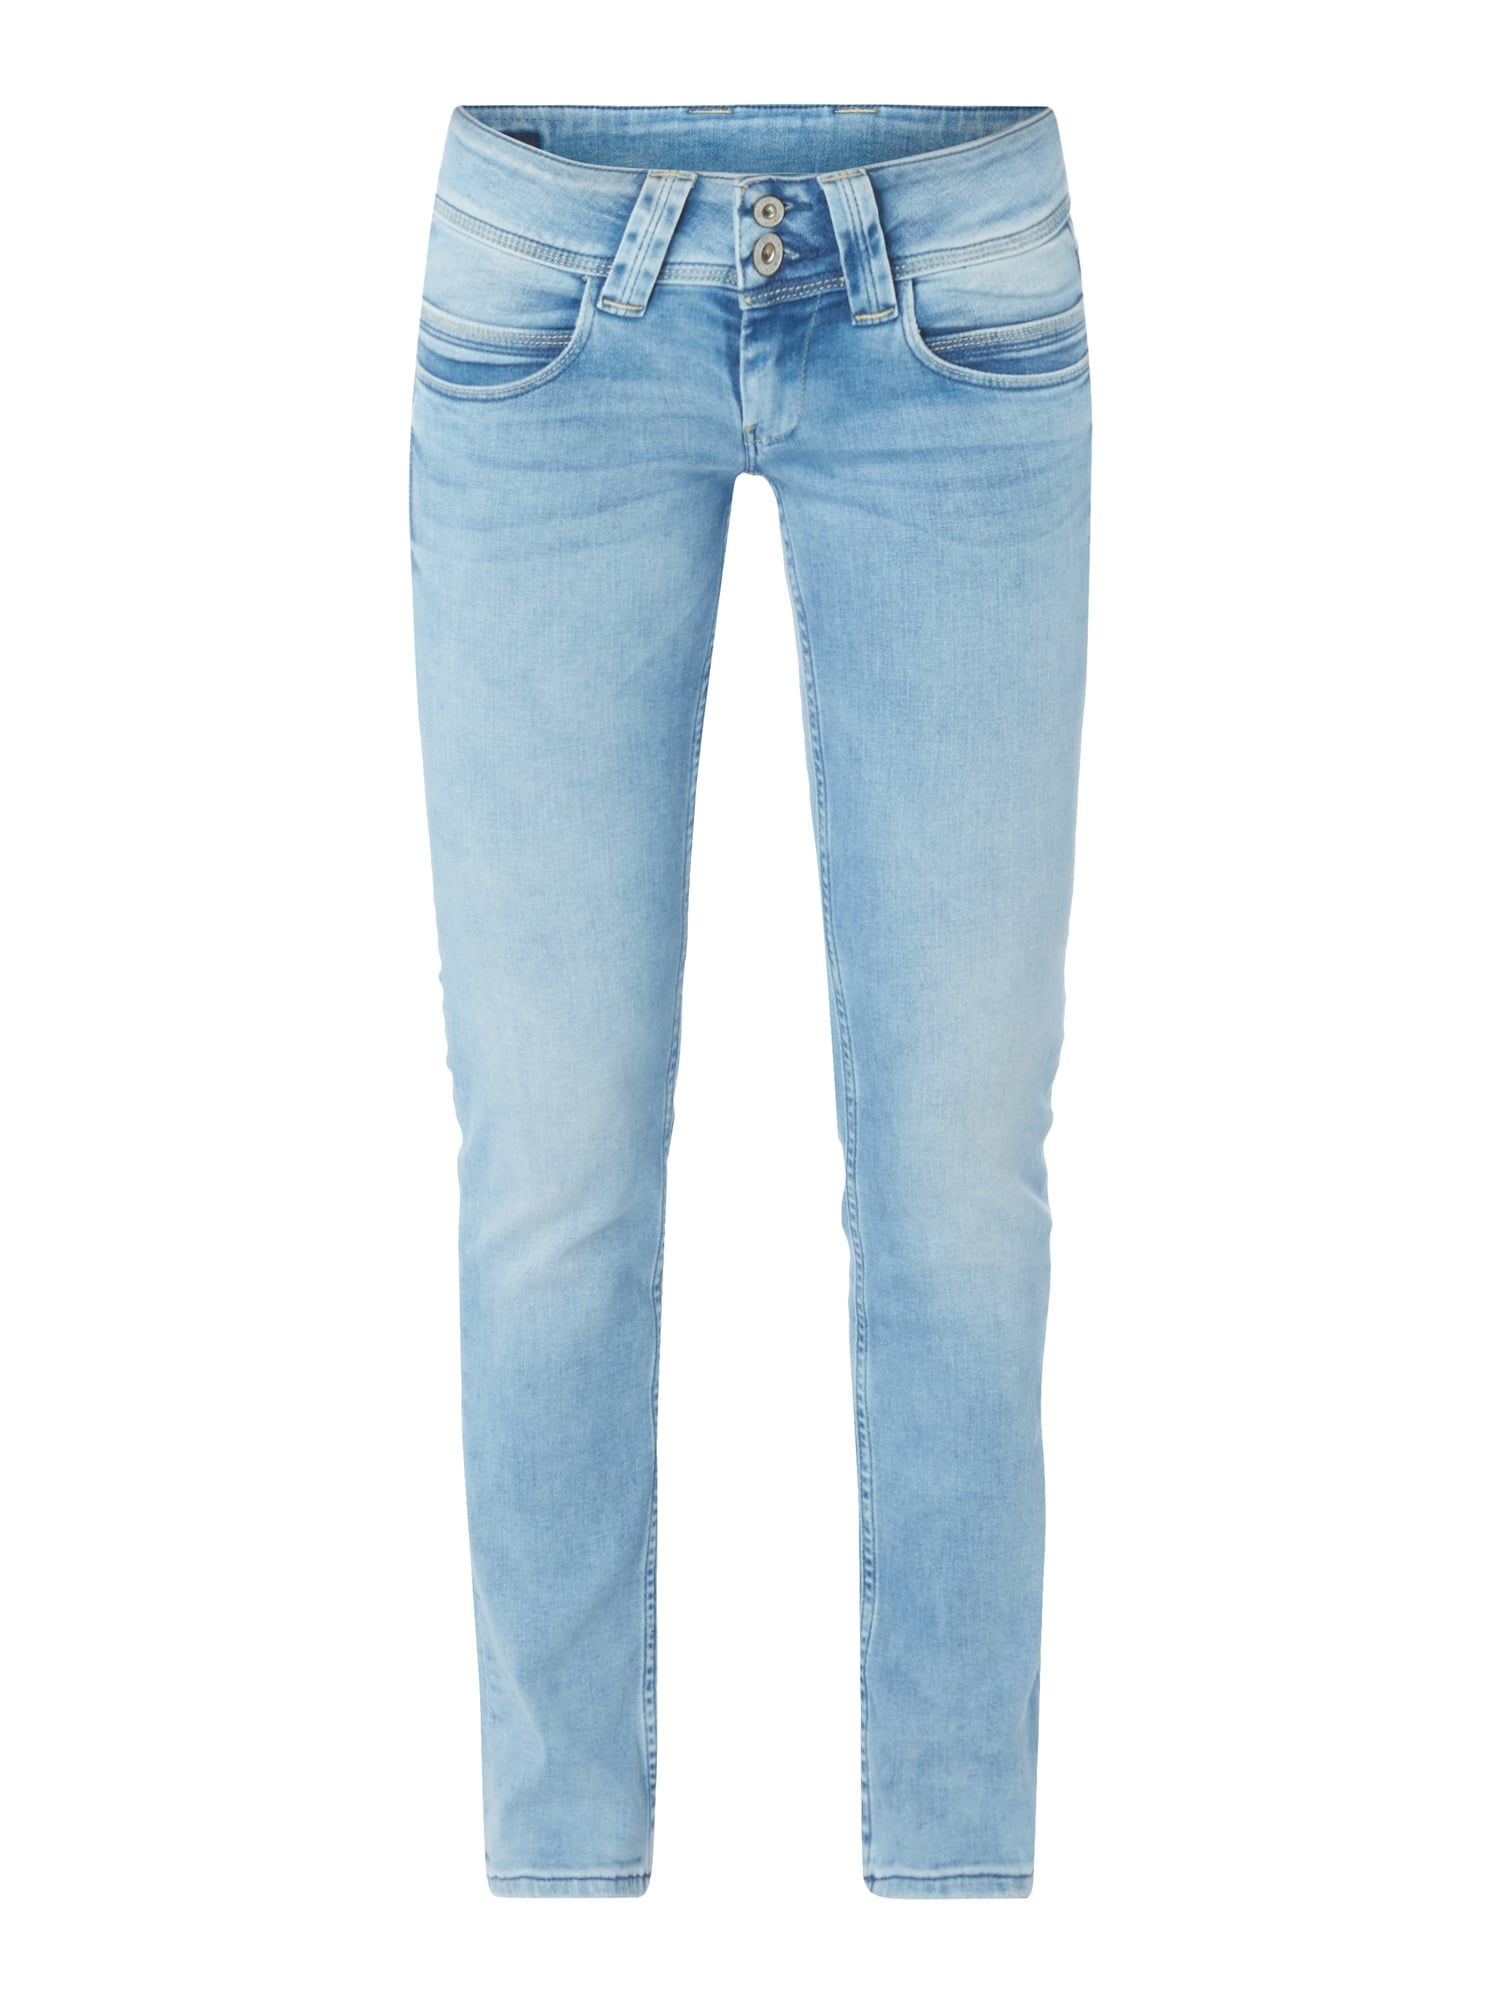 newest 5cf9c 491c7 Bei ➧ P&C Skinny jeans von PEPE-JEANS ✓ Jetzt PEPE-JEANS ...